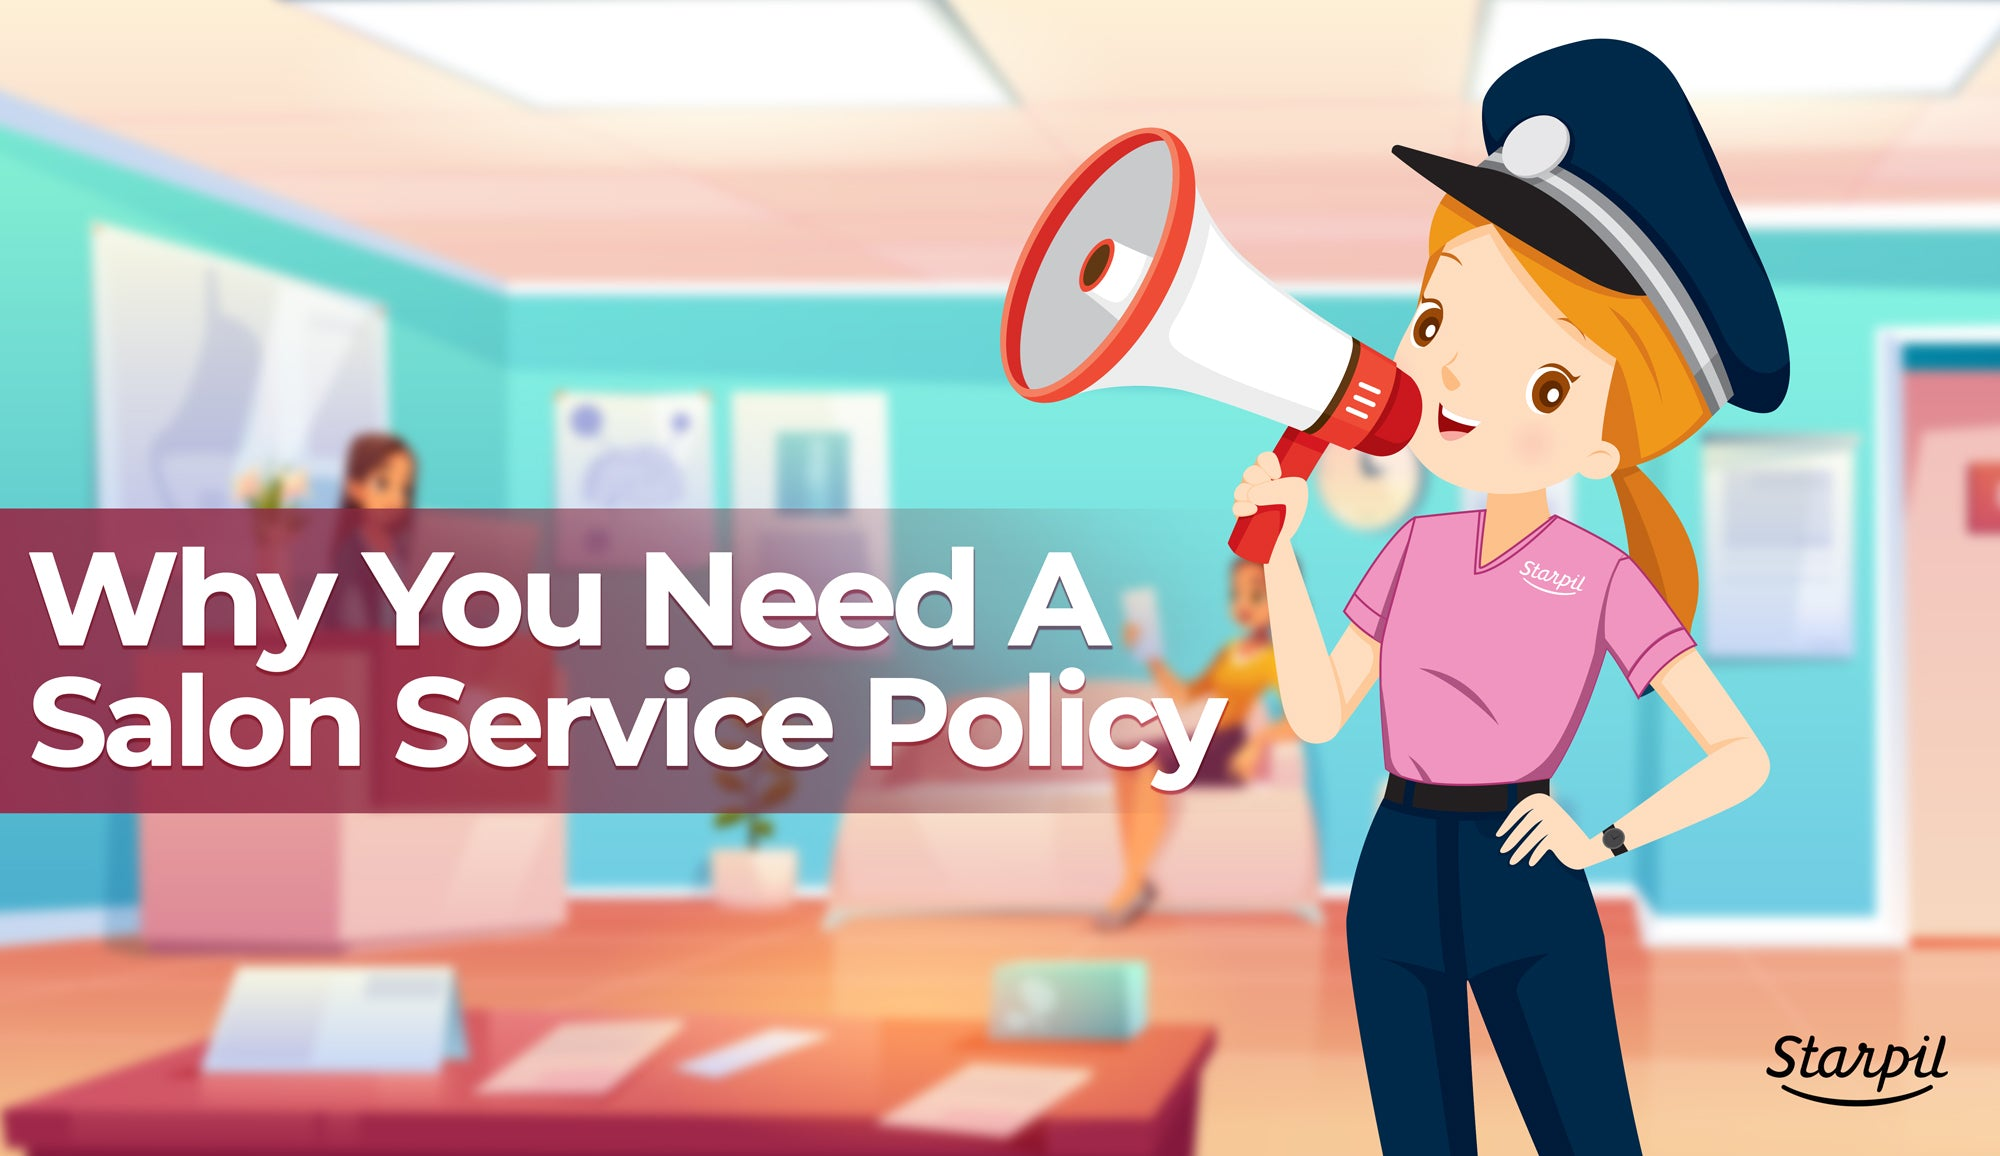 Why You Need a Salon Service Policy